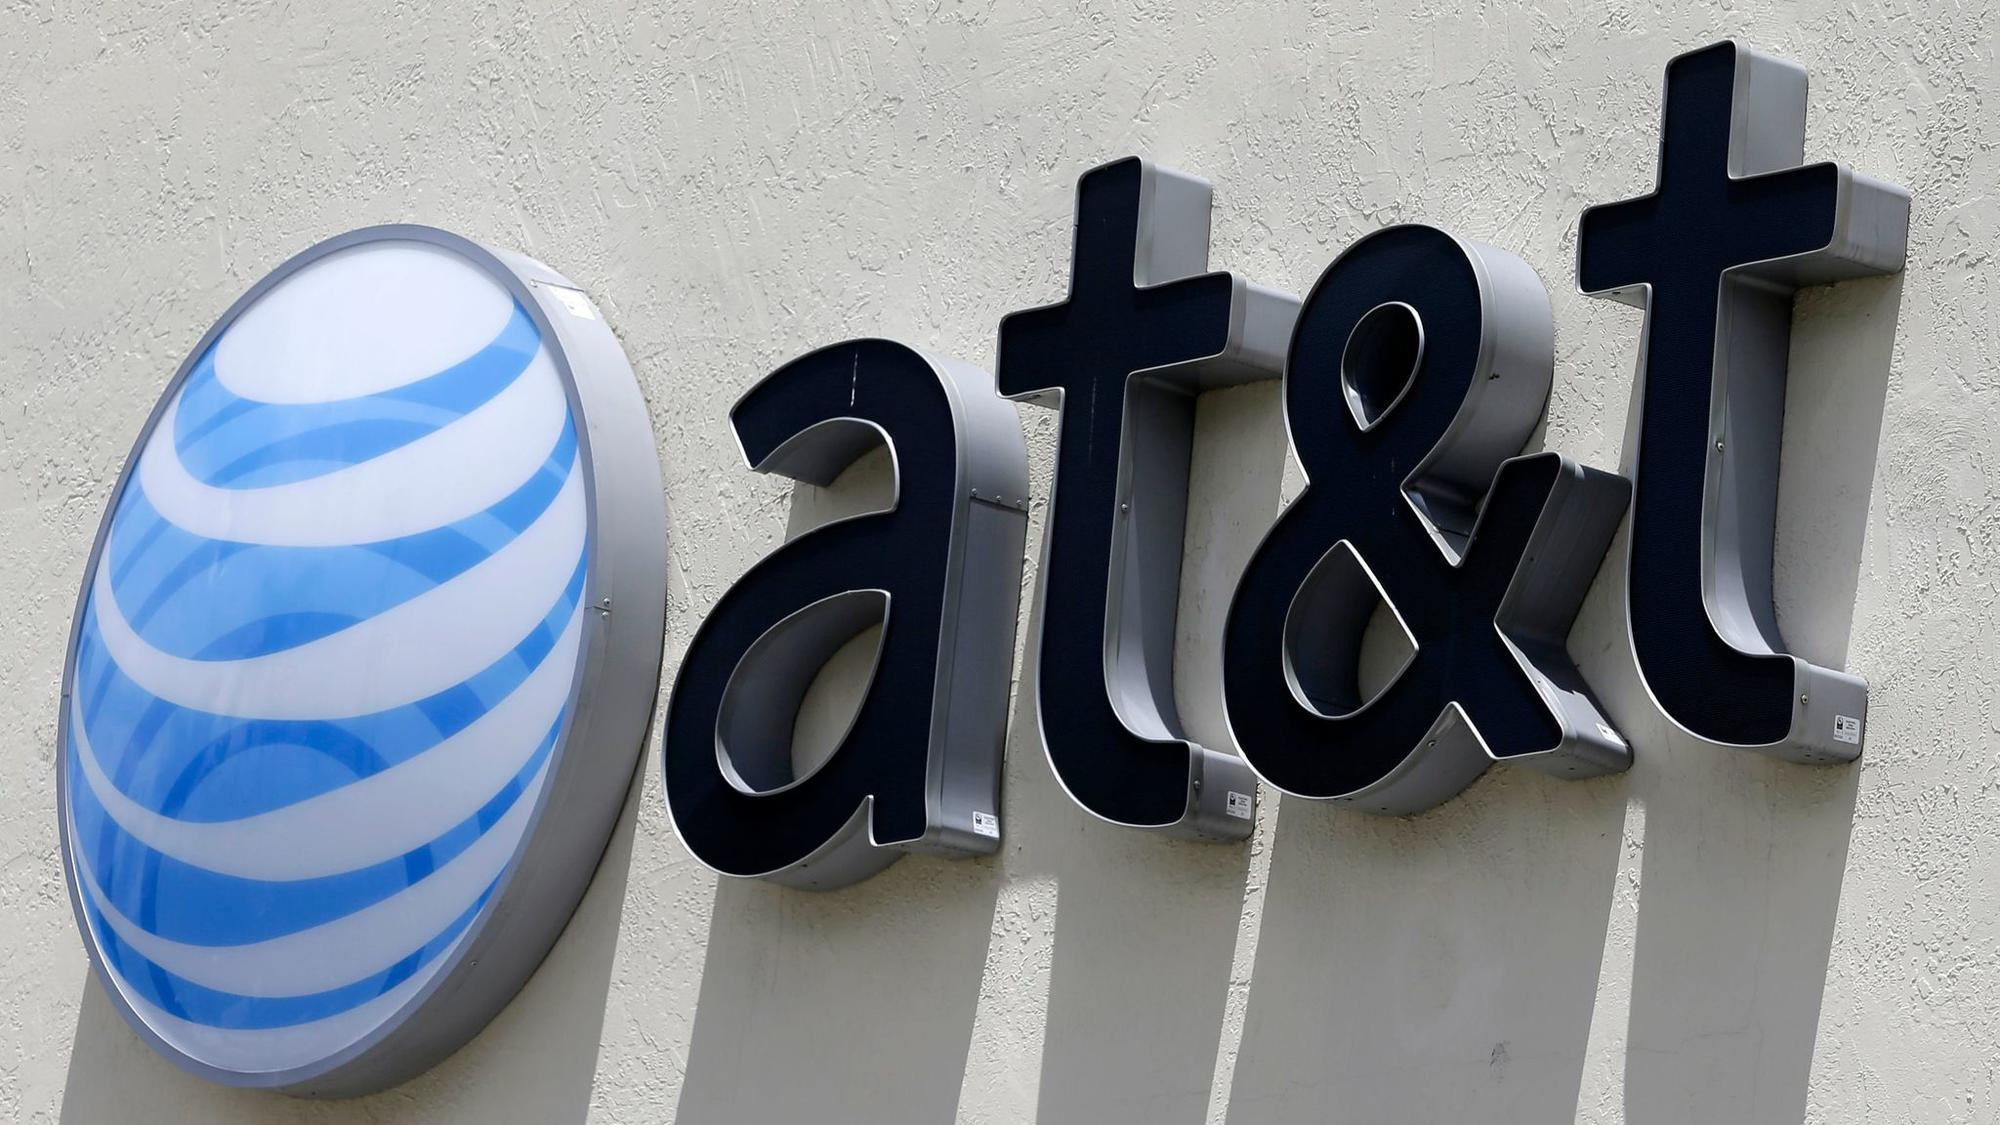 AT&T adding 500 jobs for new Chicago call center